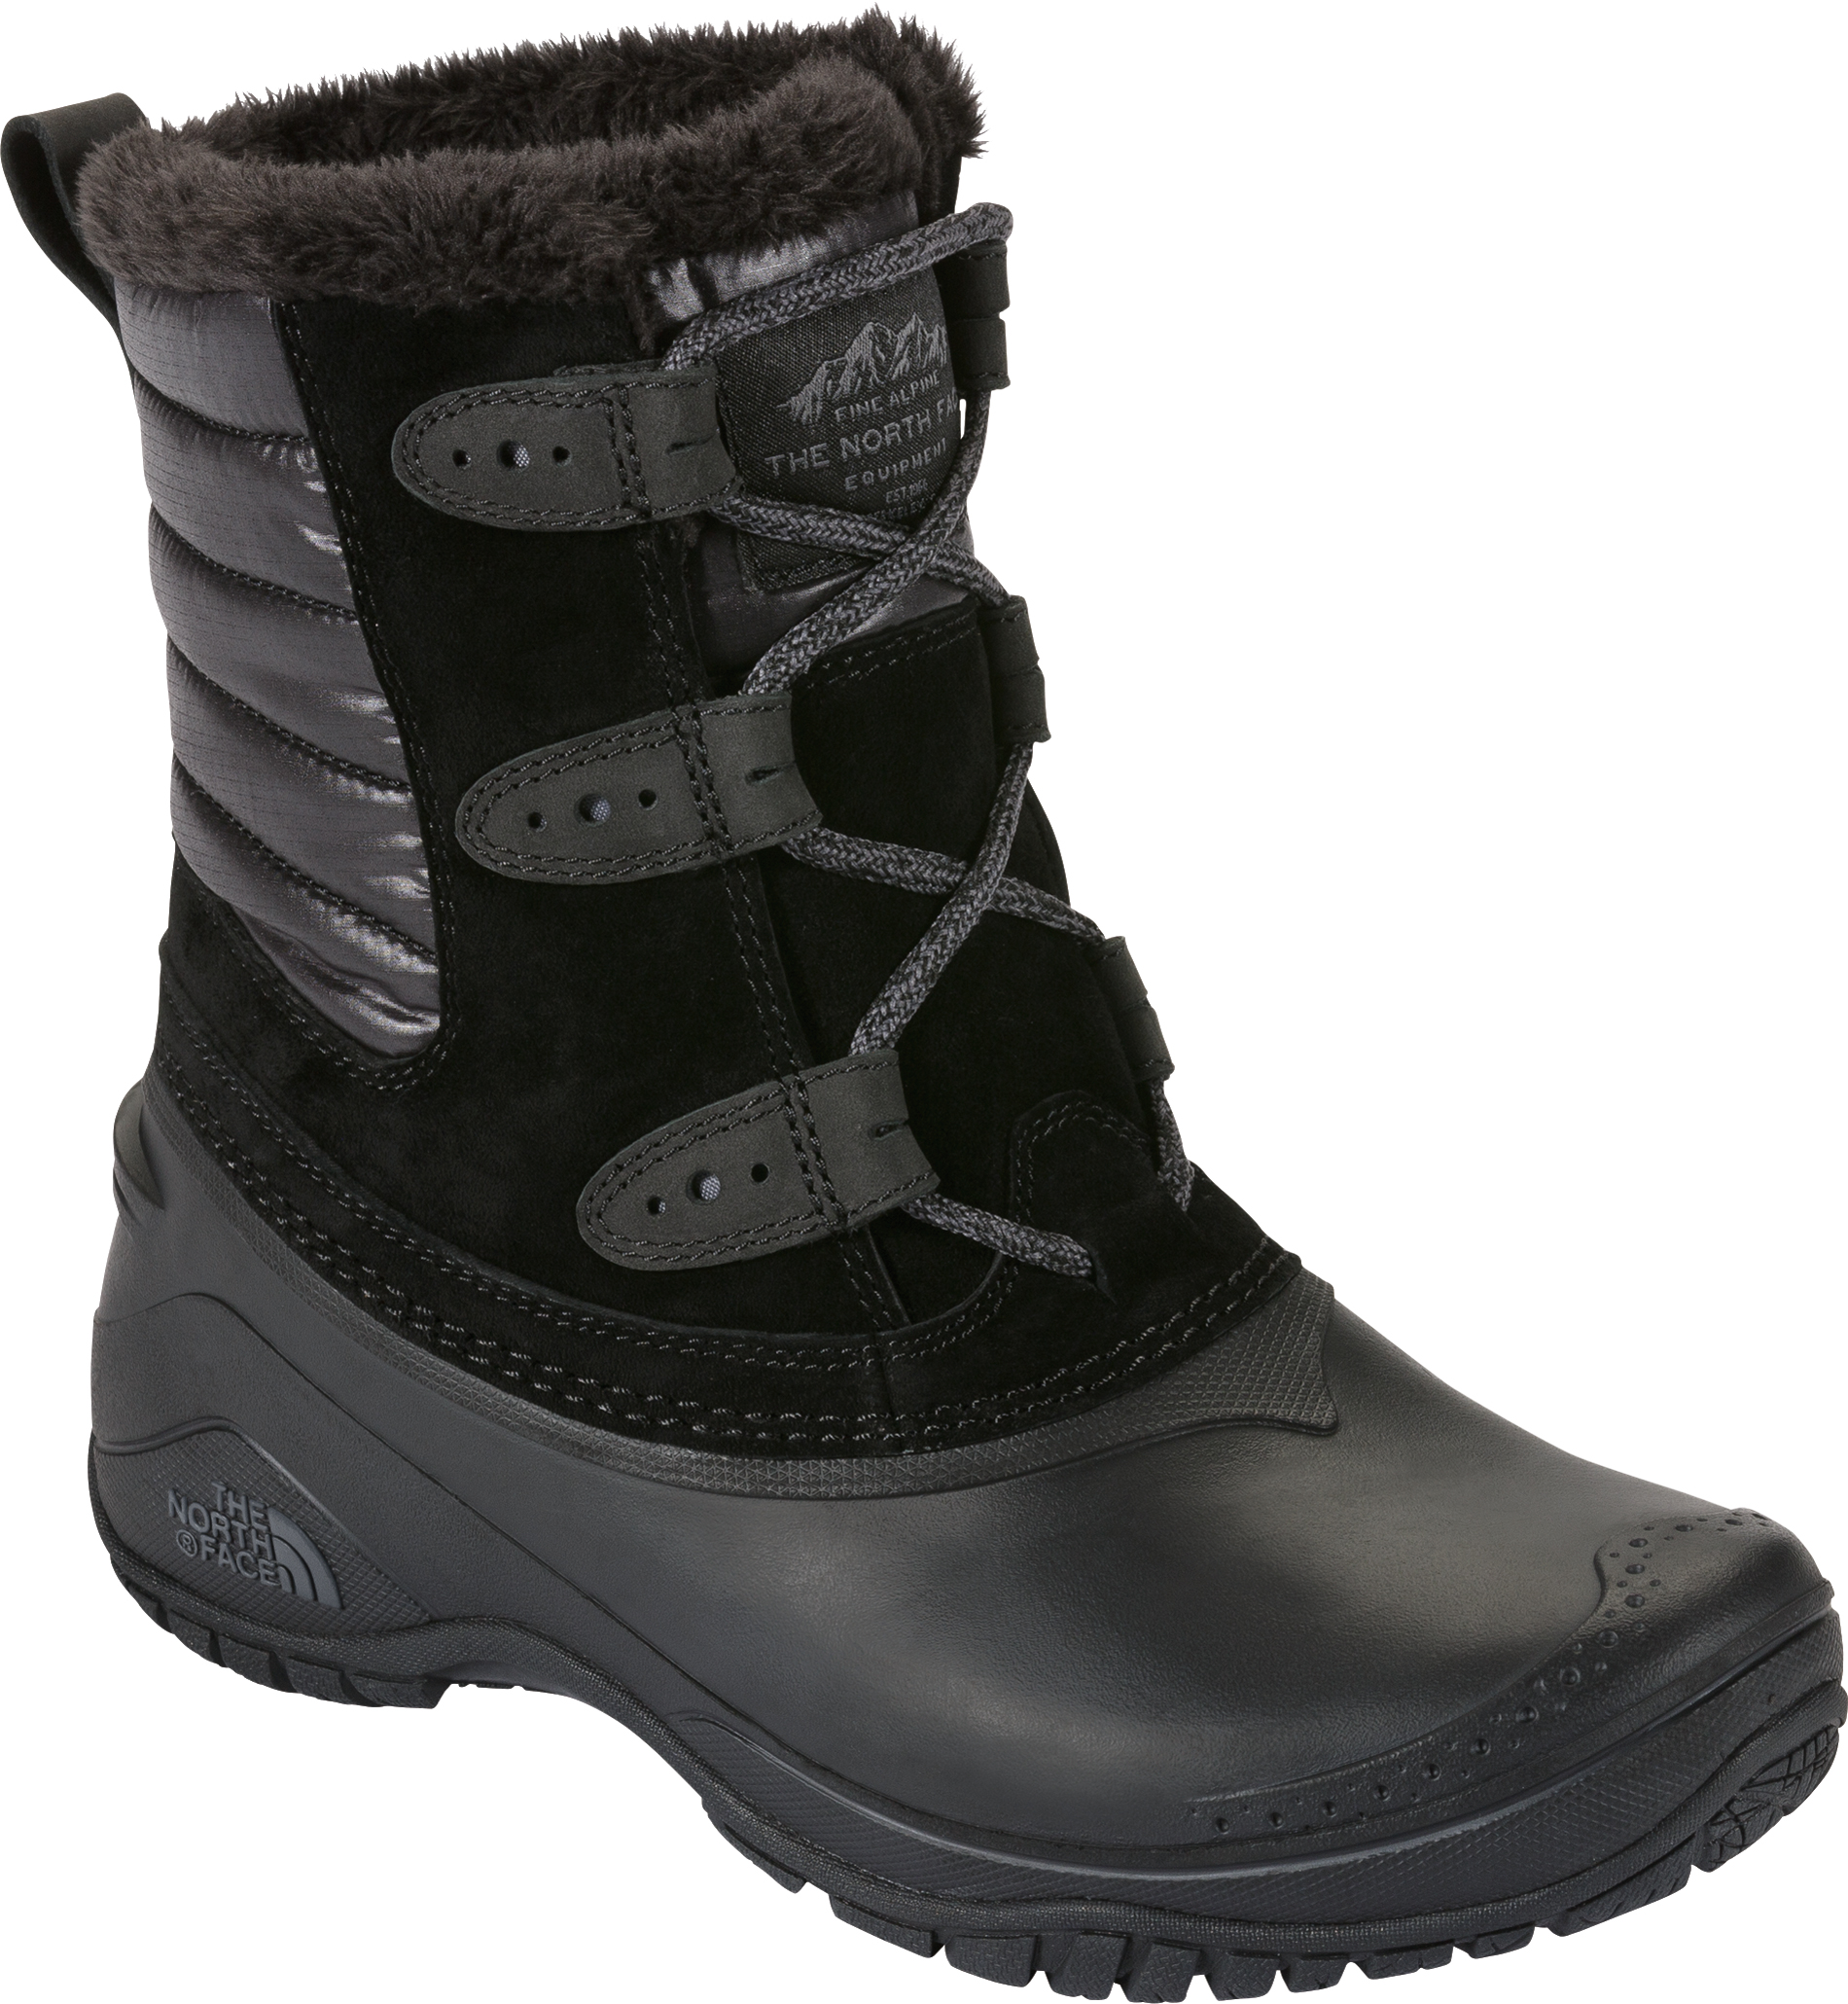 ae5327831 The North Face Shellista II Waterproof Insulated Shorty Boots - Women's